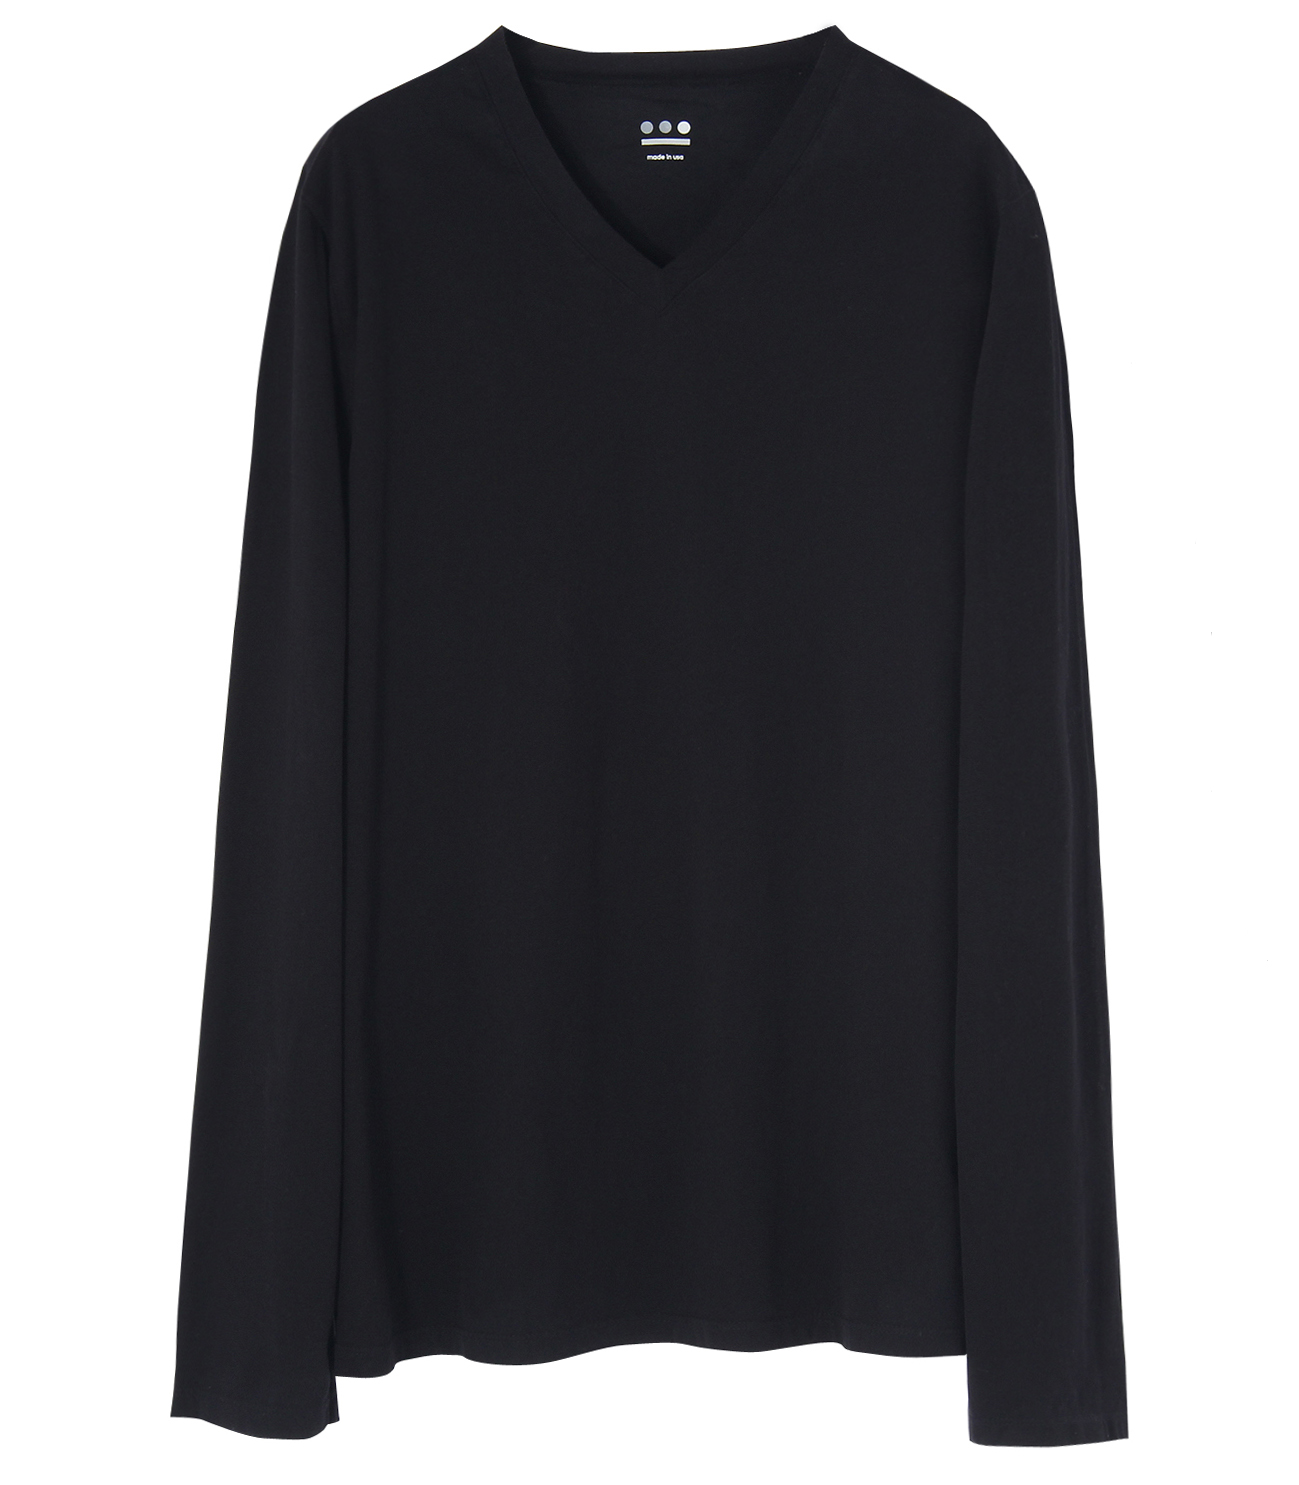 Ryan (new basic line) sanded jersey 詳細画像 black 1